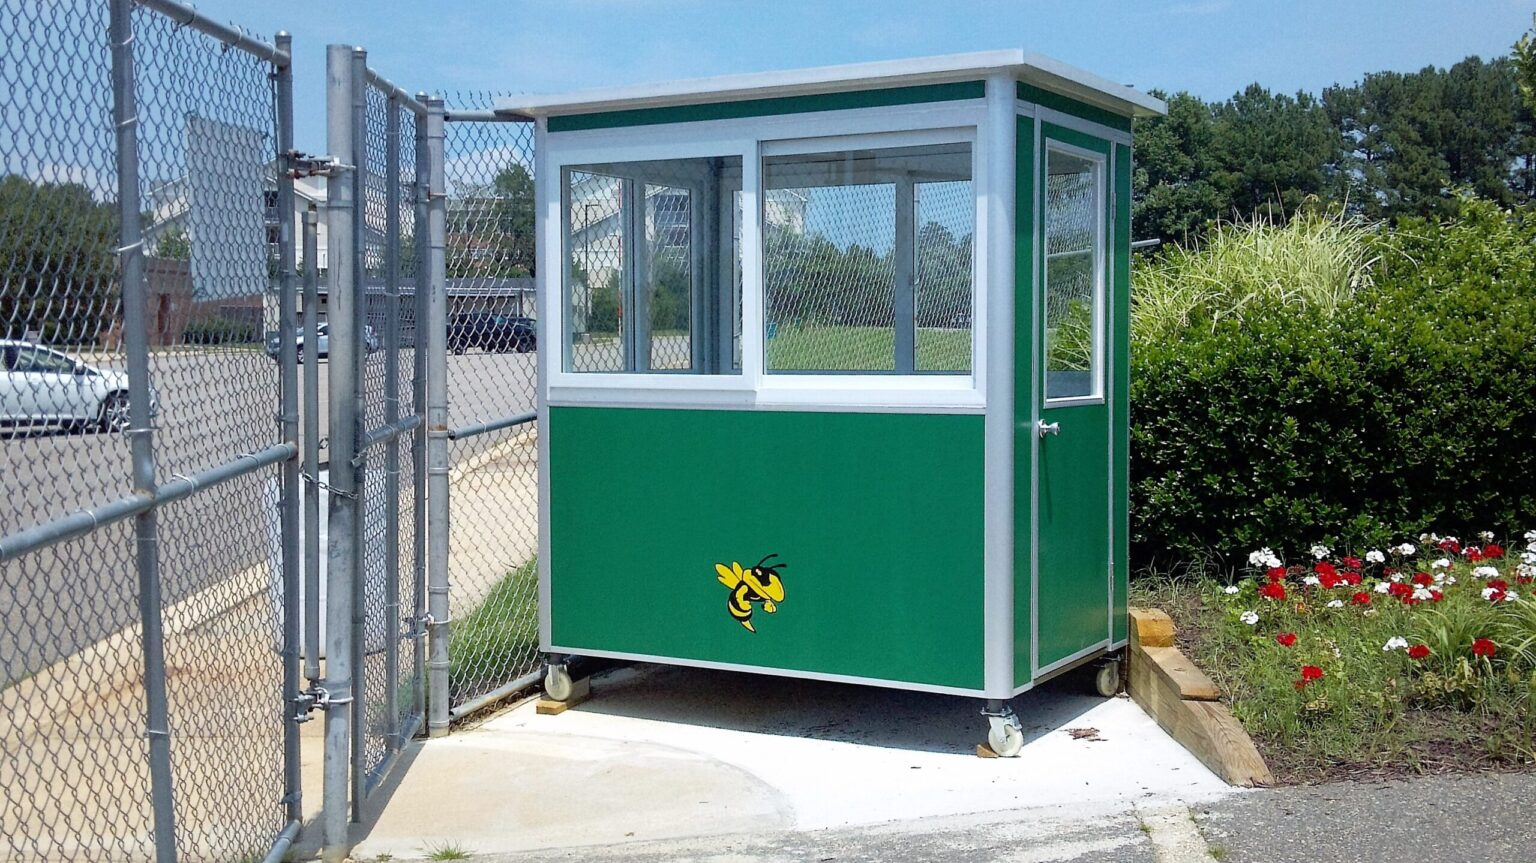 4x6 Ticket Booth in Great Mills, MD outside a School with Caster Wheels, Custom Exterior Color,  and Perimeter Security Fencing